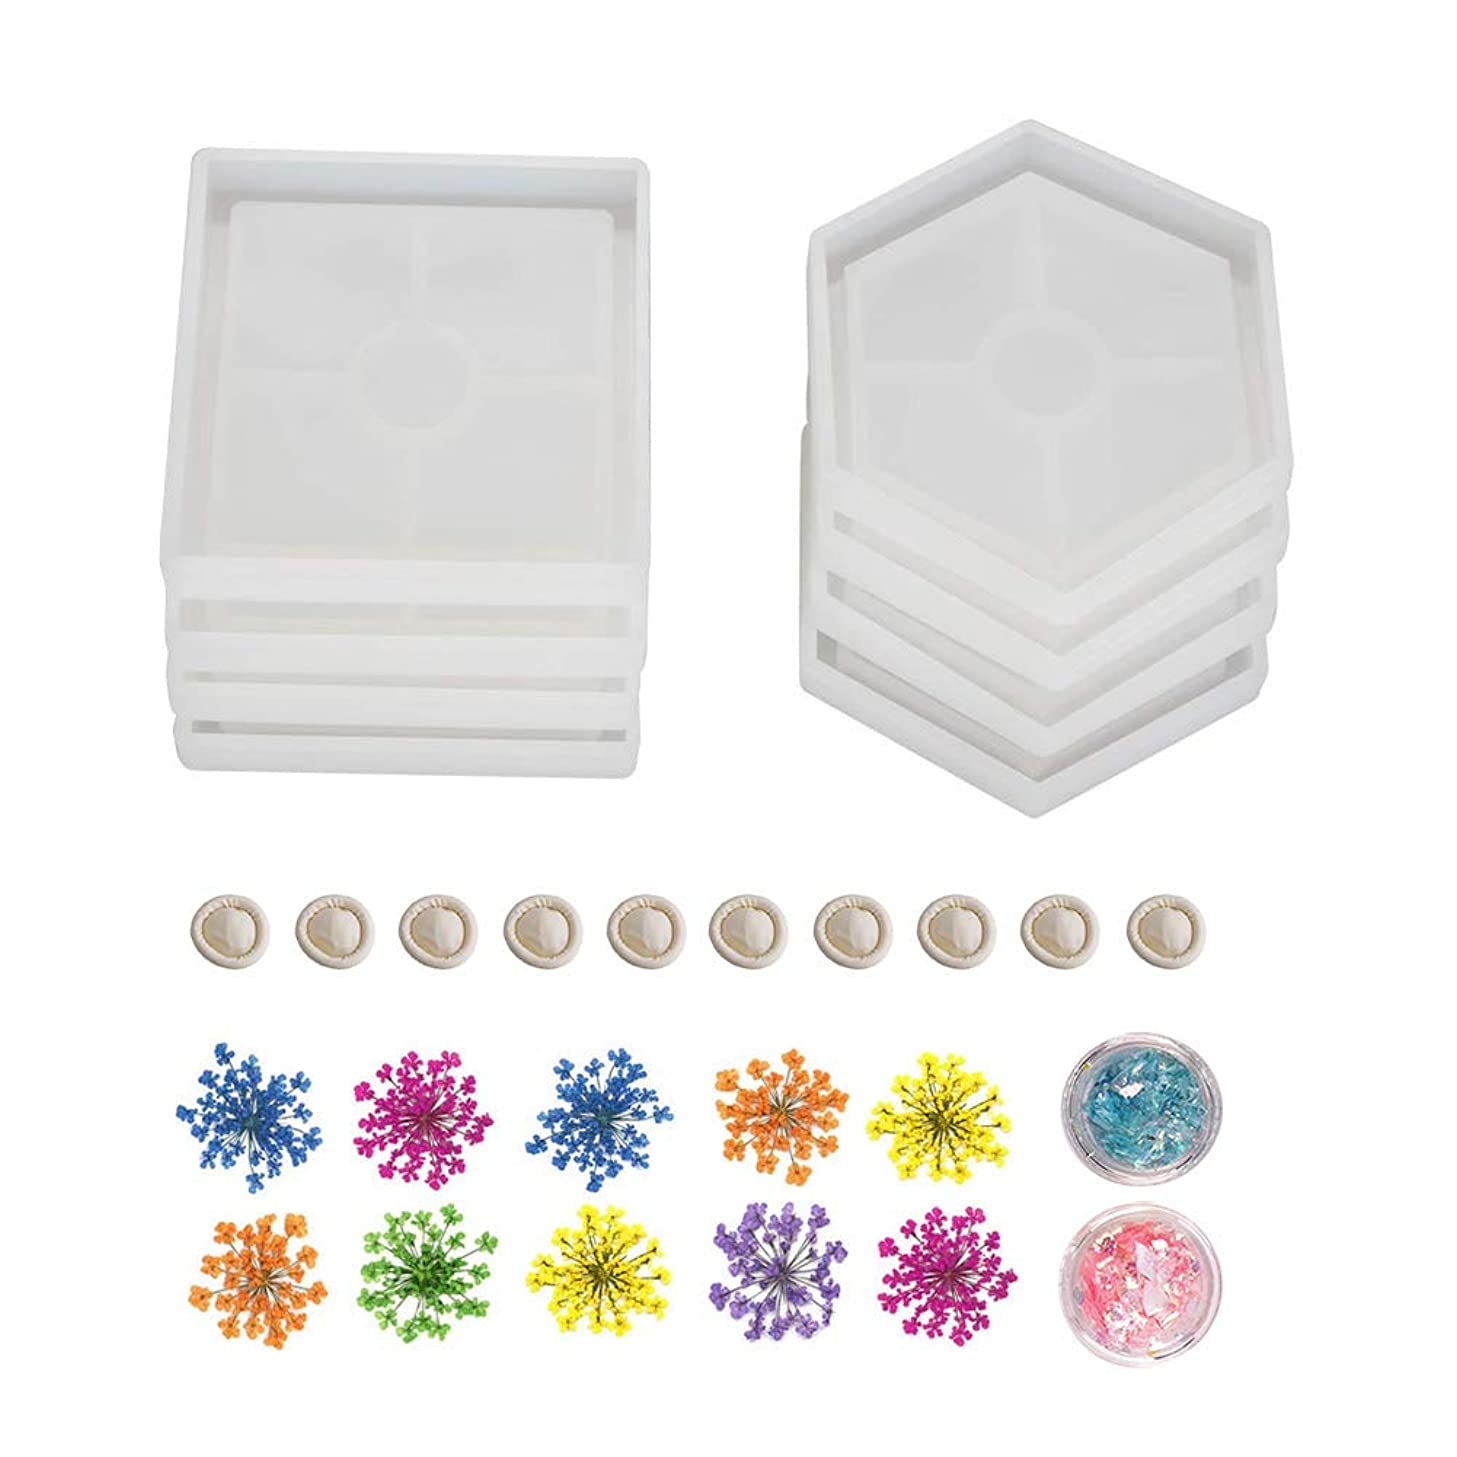 8 Pack Resin Silicone Coaster Molds, KeyZone Resin Art Molds Square Hexagon Silicone Molds with Flowers, Sequins and Finger Cots for Concrete, Cement, Soap Holder